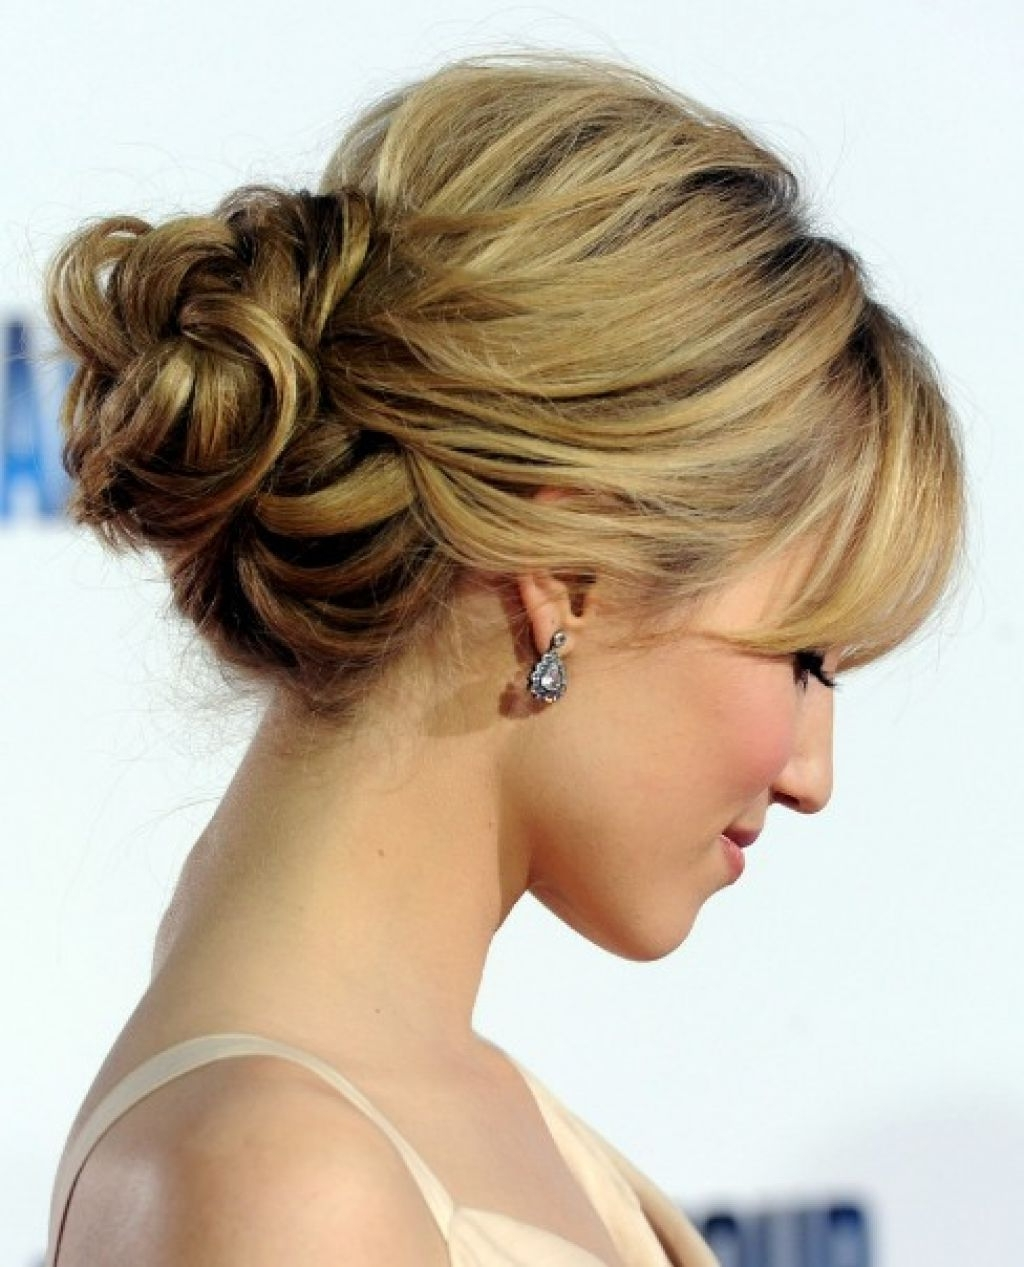 Romantic Loose Low Bun Updo For Wedding From Dianna Agron | Wedding Within Low Bun Updo Wedding Hairstyles (View 12 of 15)